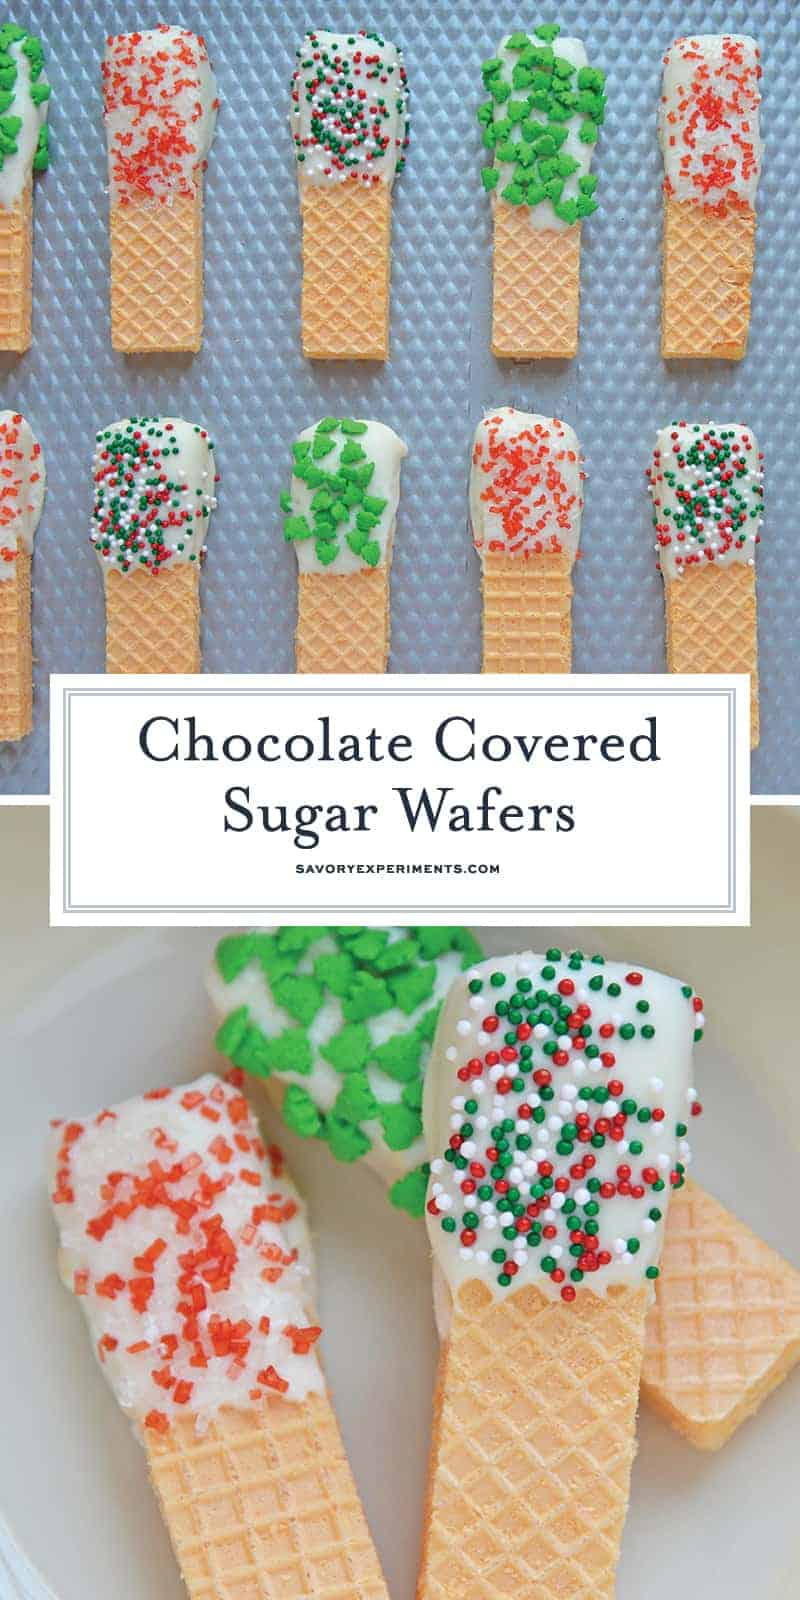 Chocolate Covered Sugar Wafers no bake cookies are quick, easy and festive Christmas cookies. Perfect for cookie trays and holiday parties. #nobakecookies #easychristmascookies #sugarwafercookies www.savoryexperiments.com